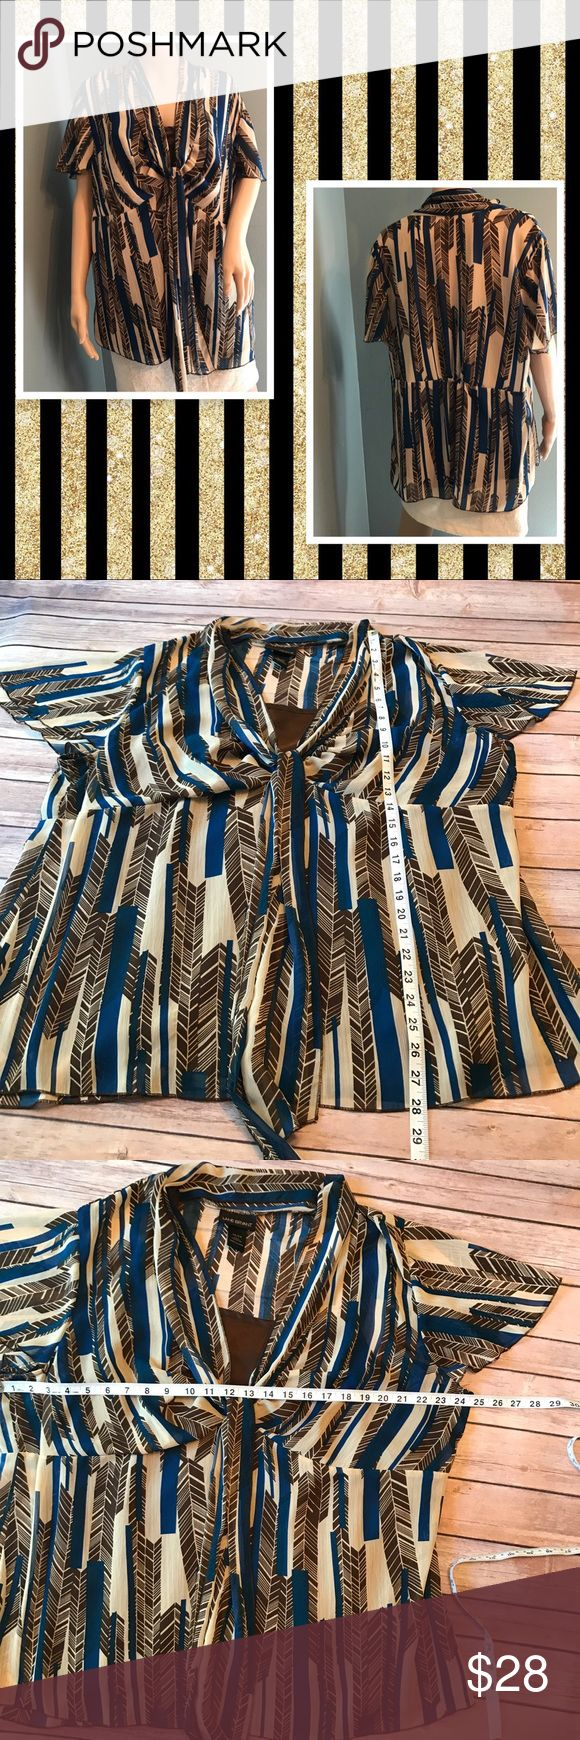 Lane Bryant 22/24 Sheer Top with tank underneath Beautiful blue, brown, and cream design. Top part is sheer with flutter sleeves. Underneath comes with a solid brown cami, Front neckline also has a tie. Size 22/24. 100% polyester Lane Bryant Tops Blouses